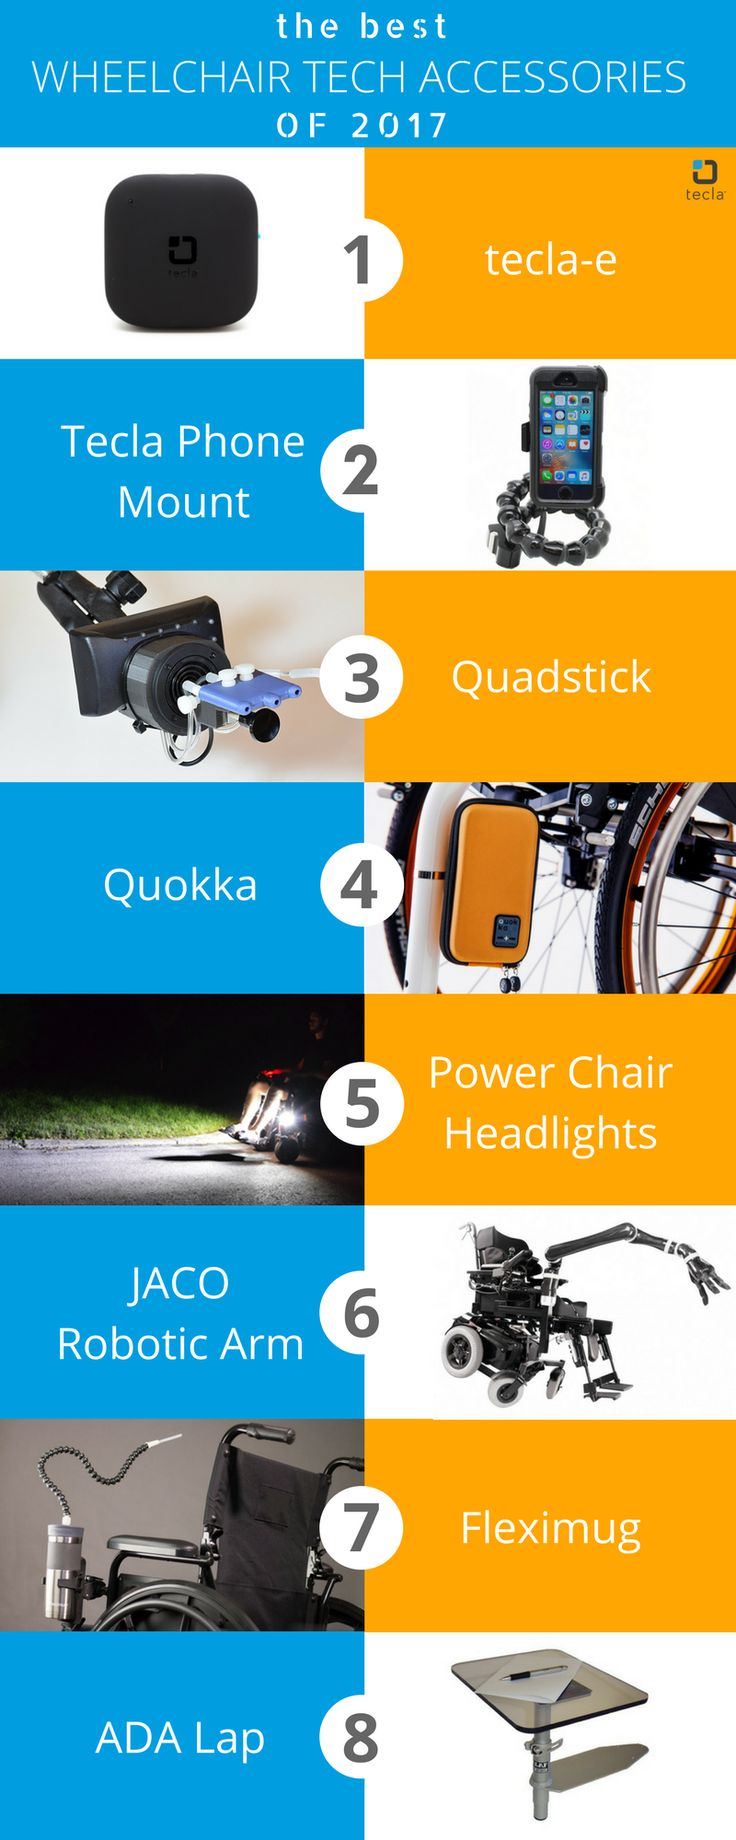 Electric bike adaption for wheel chair youtube - Cool Wheelchair Accessories And Tools For Quadriplegics Including Tecla E Iphone Mount Quadstick